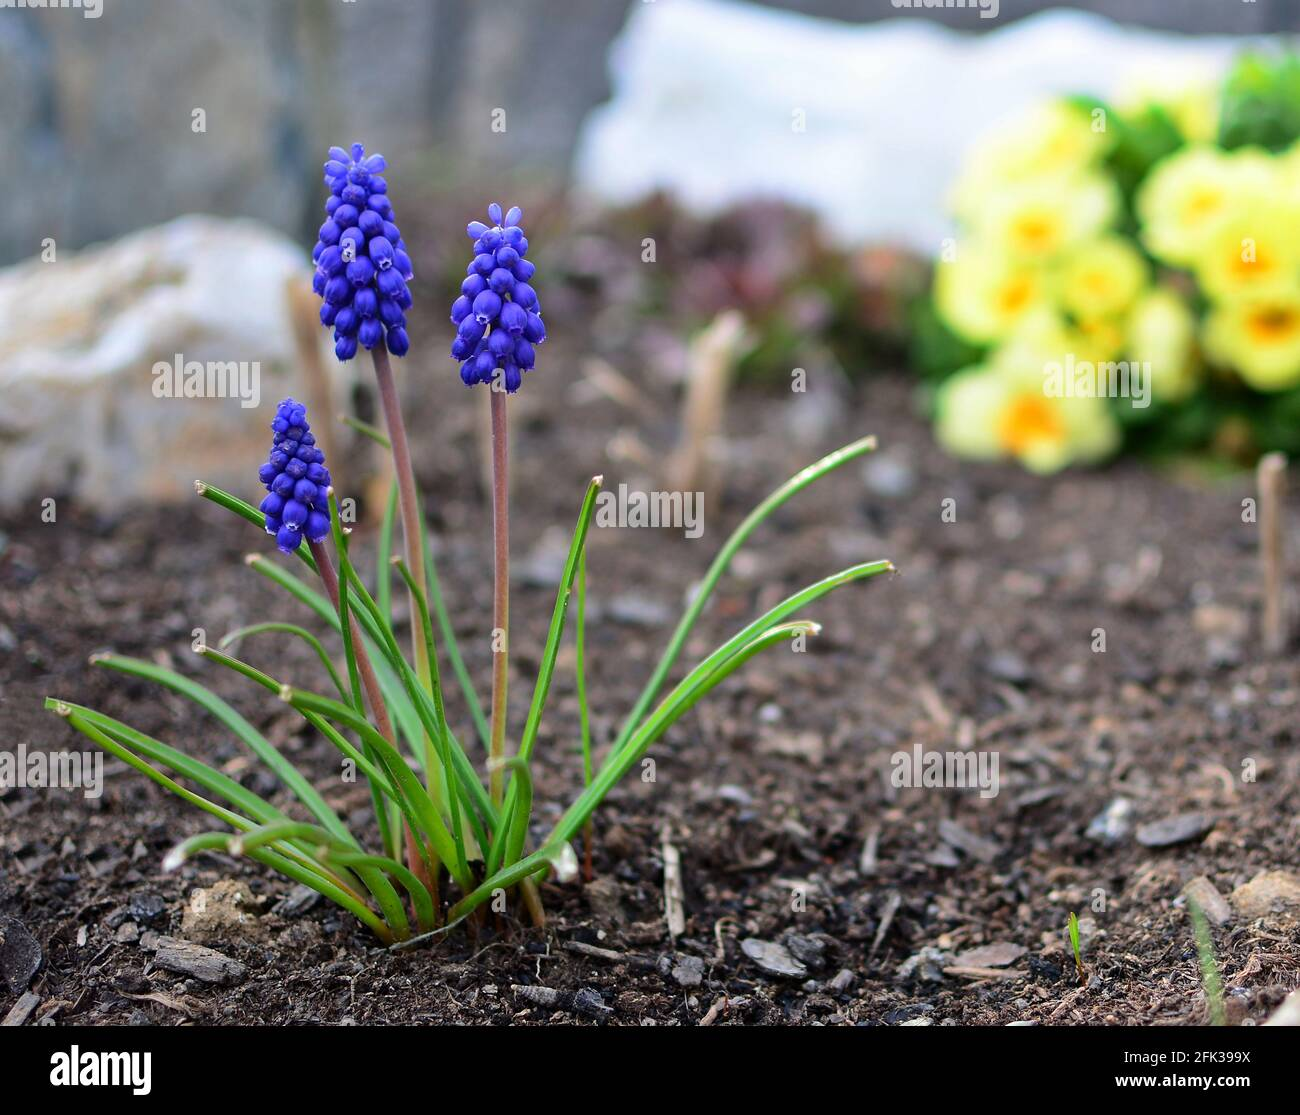 Close Up of Blue Muscari Armeniacum or Armenian Grape Hyacinth Bunch, Growing in the Garden from the Soil at Early Spring Season. Stock Photo